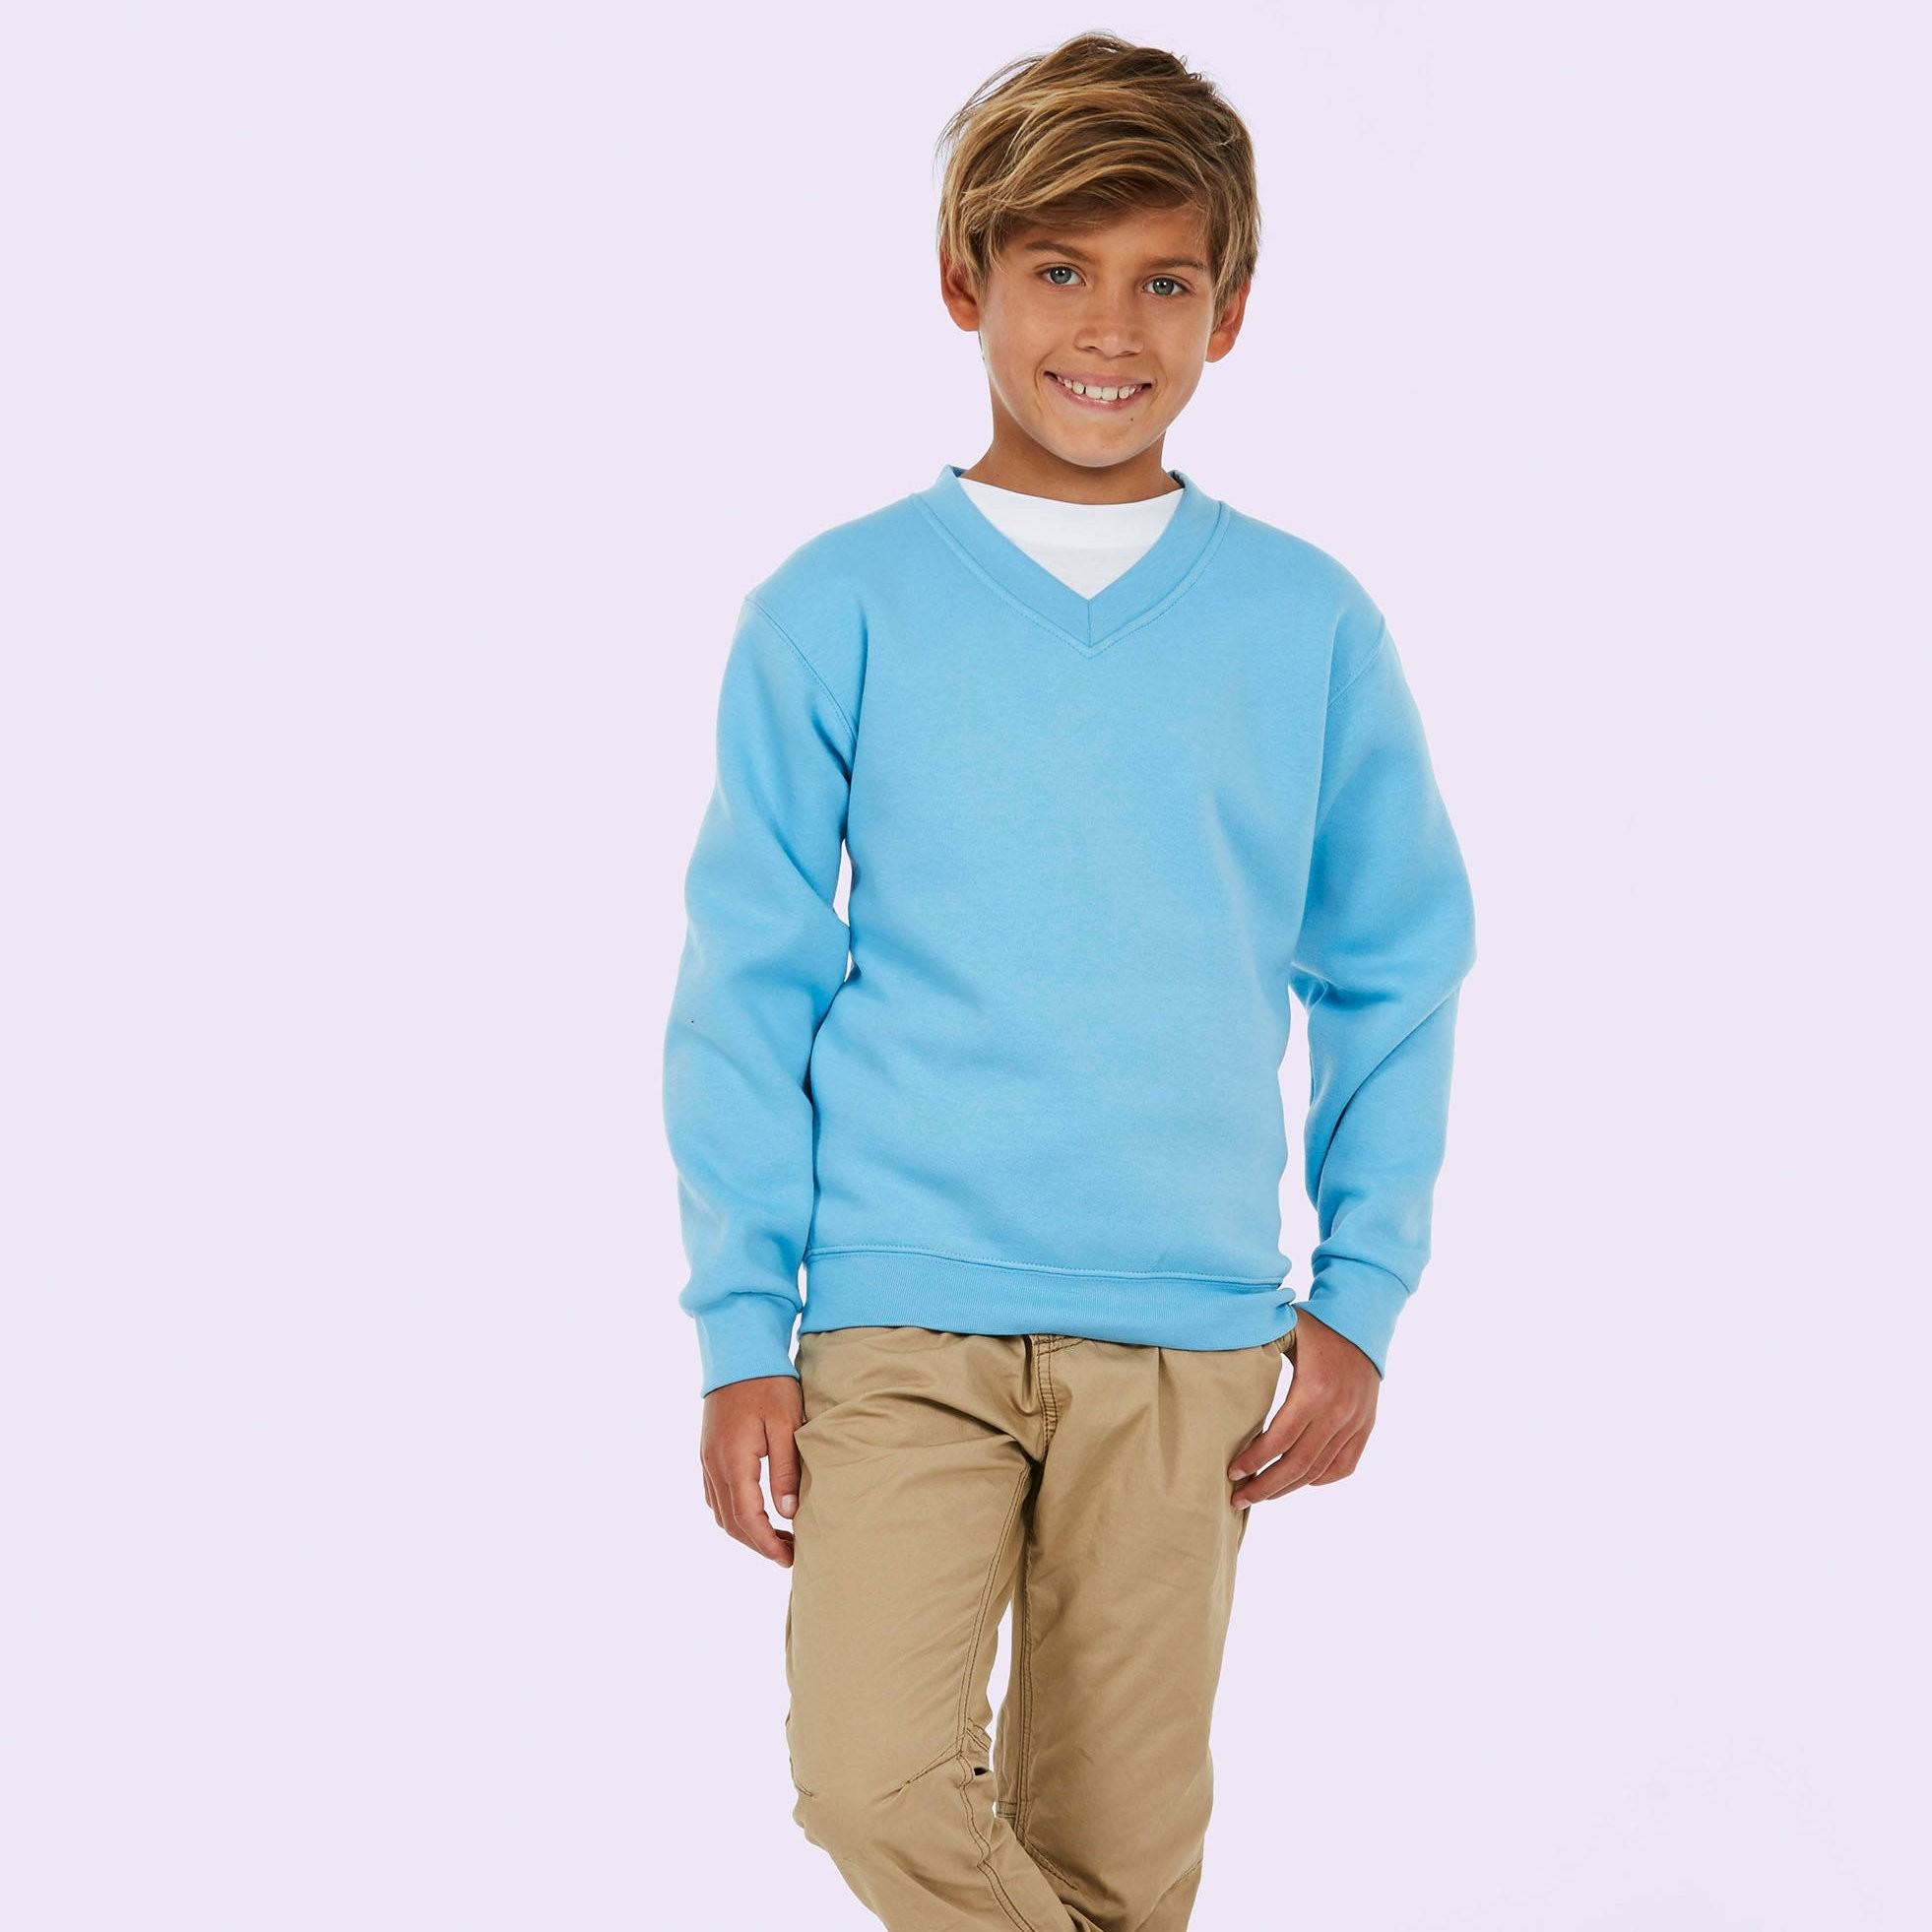 UC206 Children's v neck sweatshirt